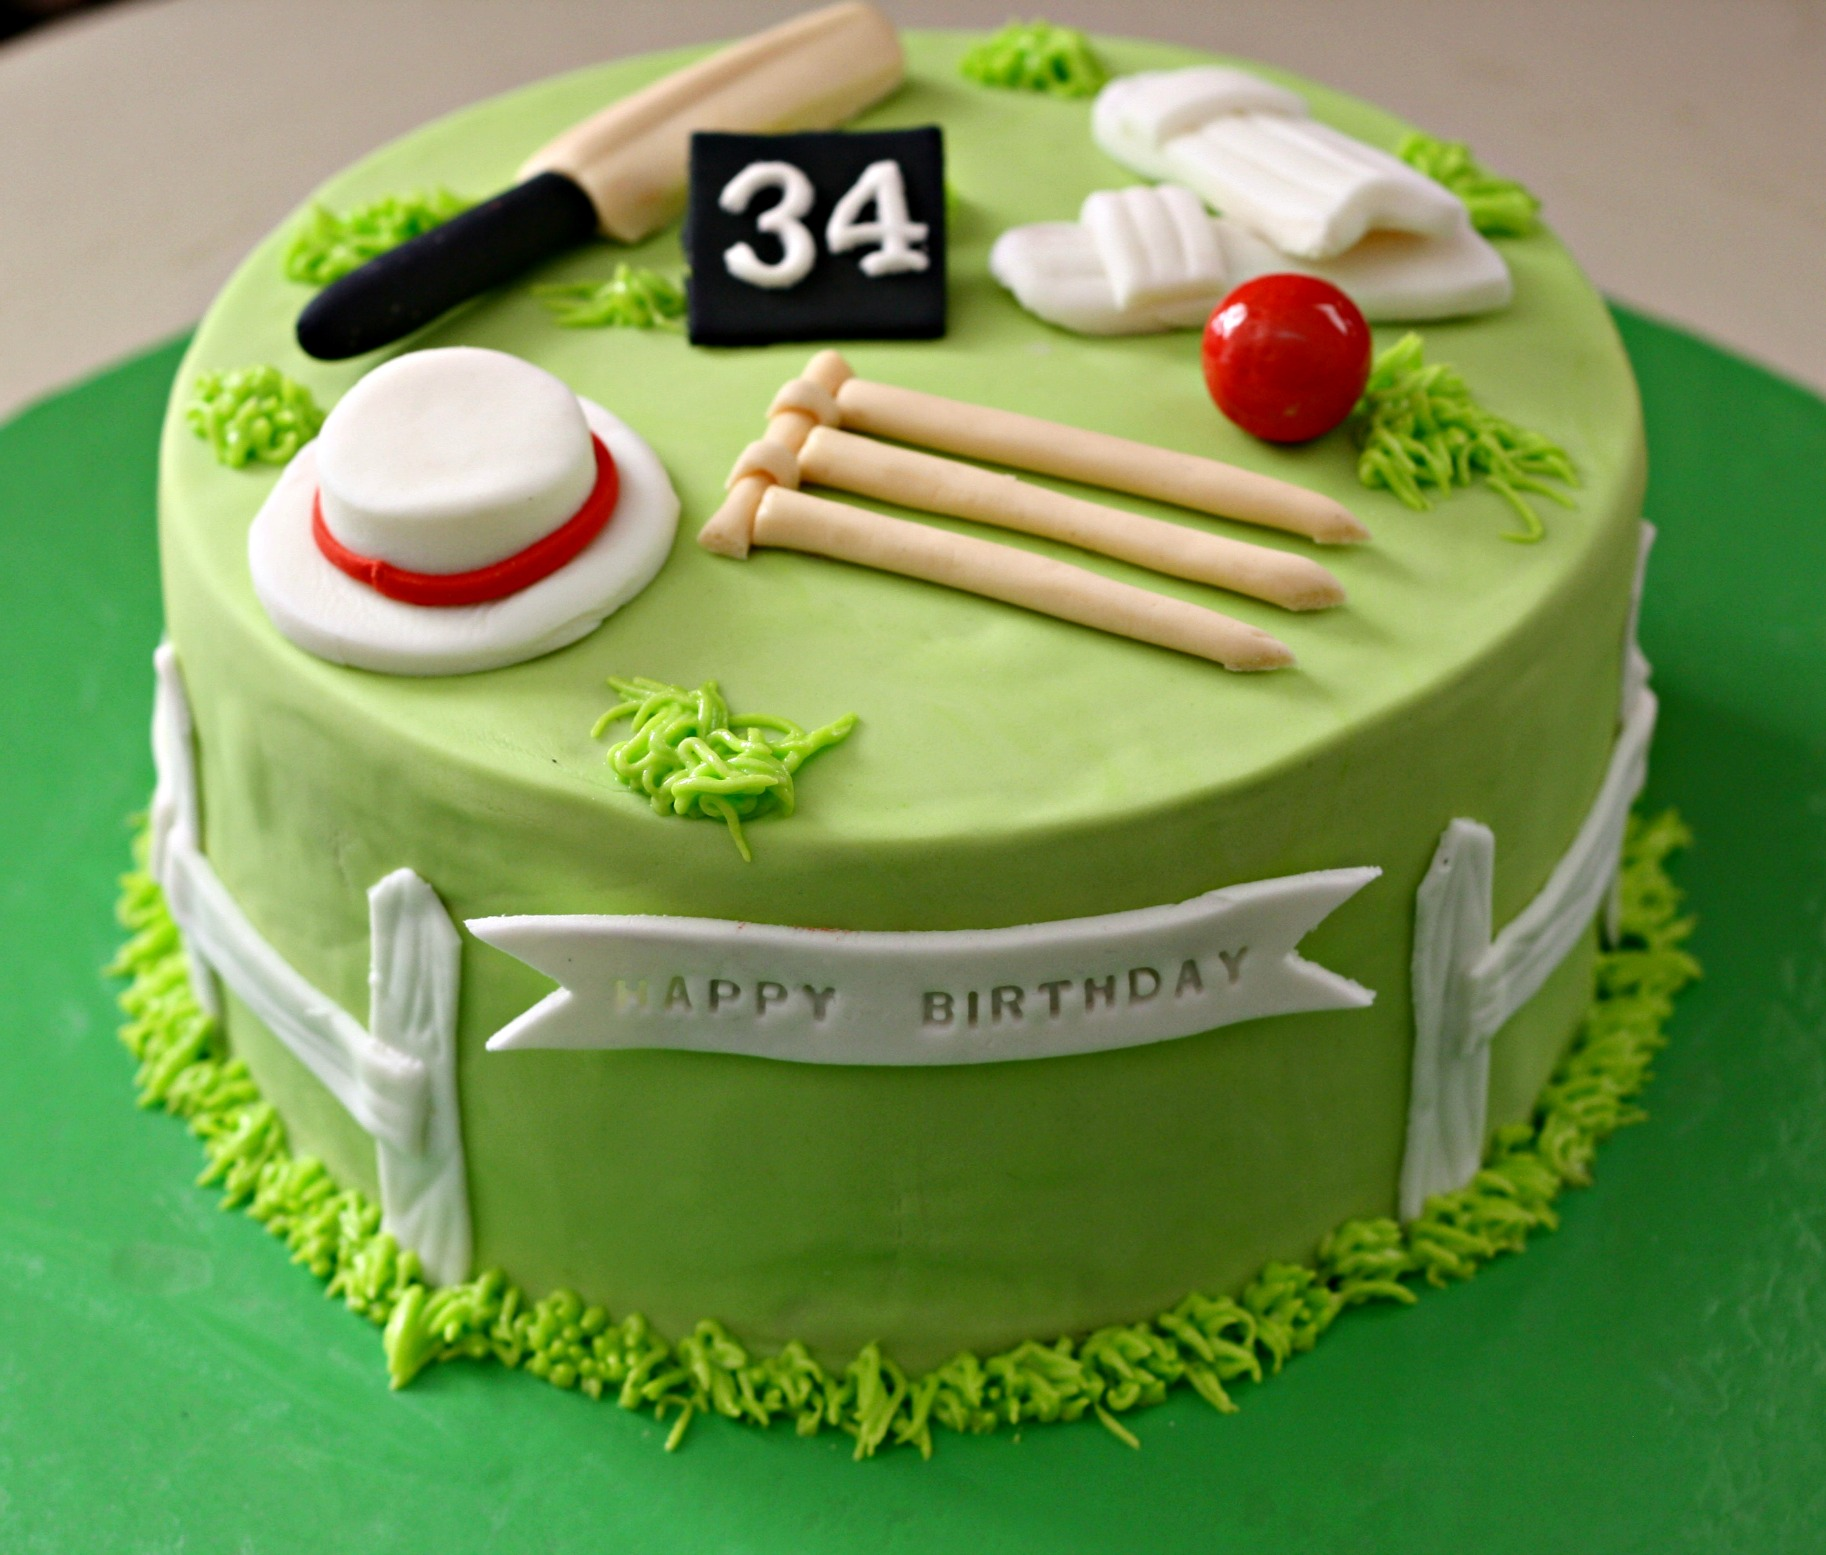 personalized 34th yellow green birthday cake